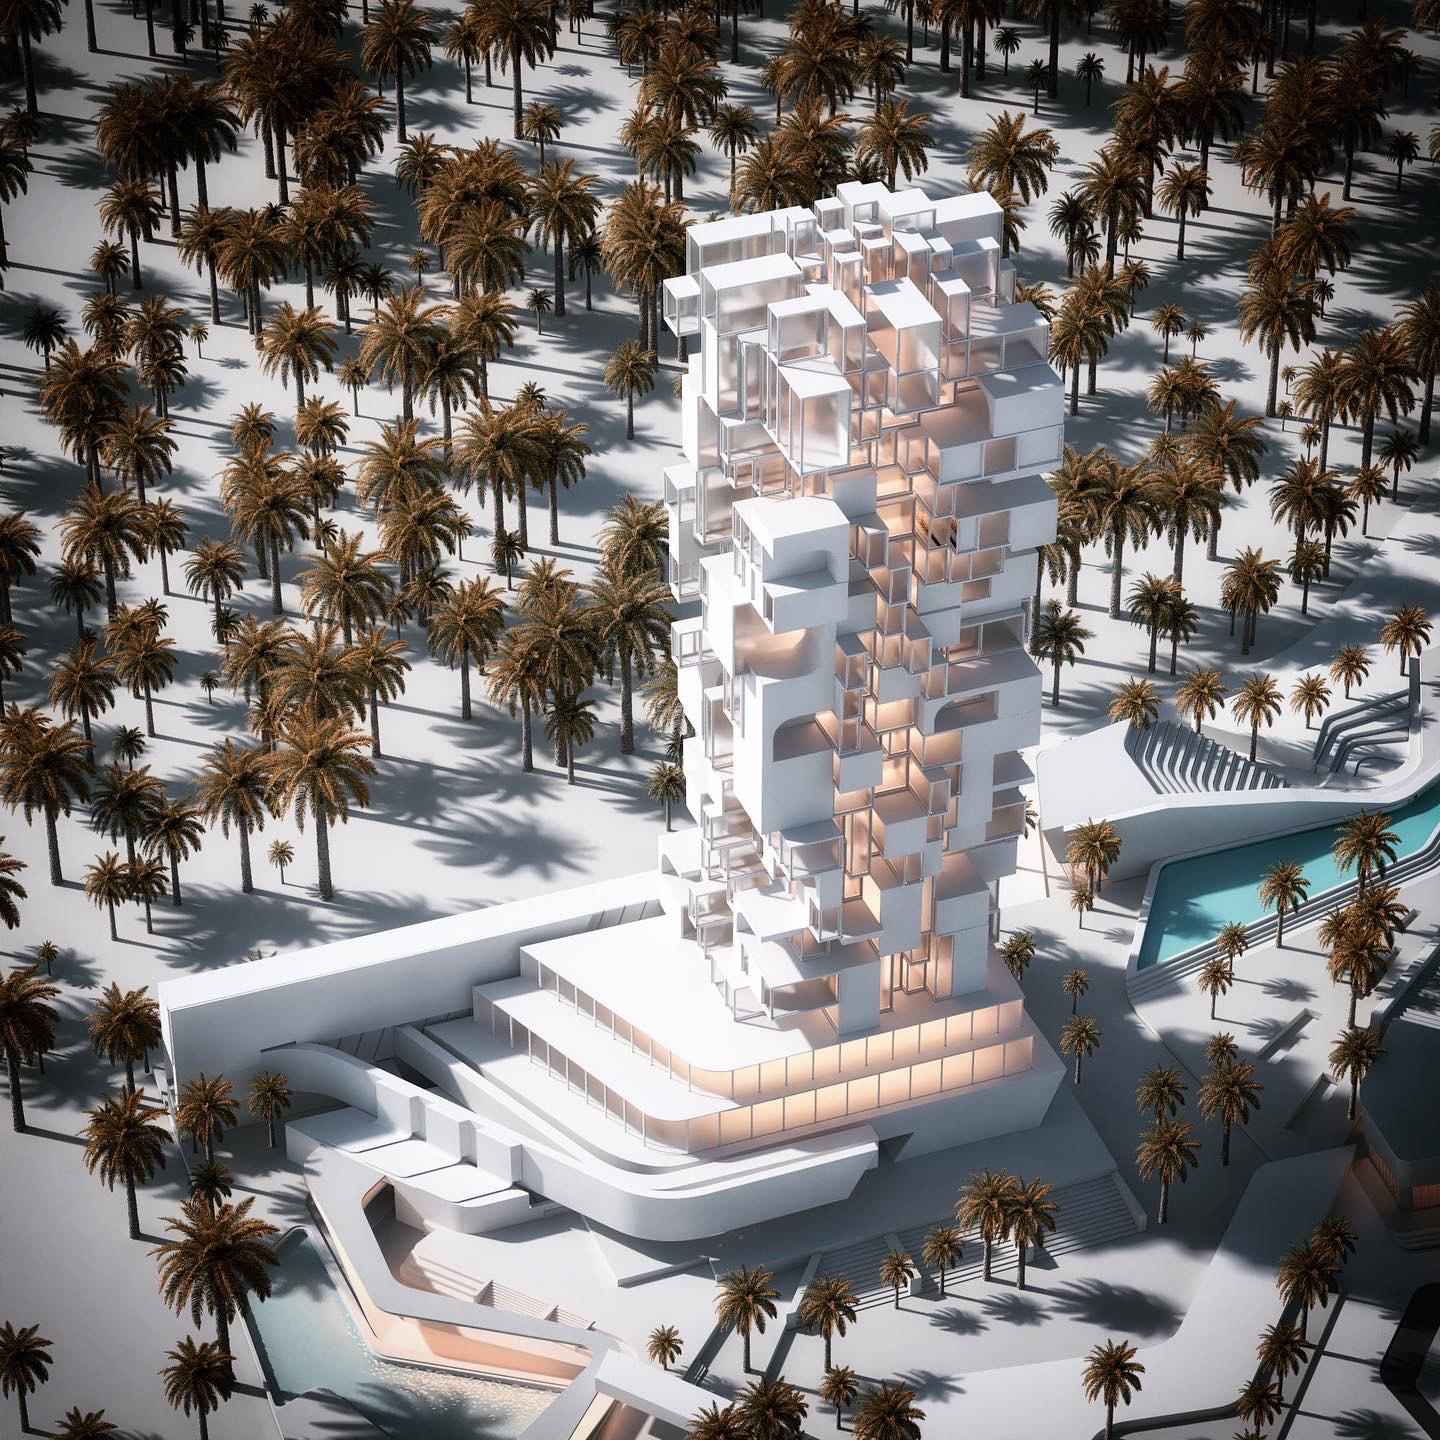 rendering image of a building surrounded with palm trees